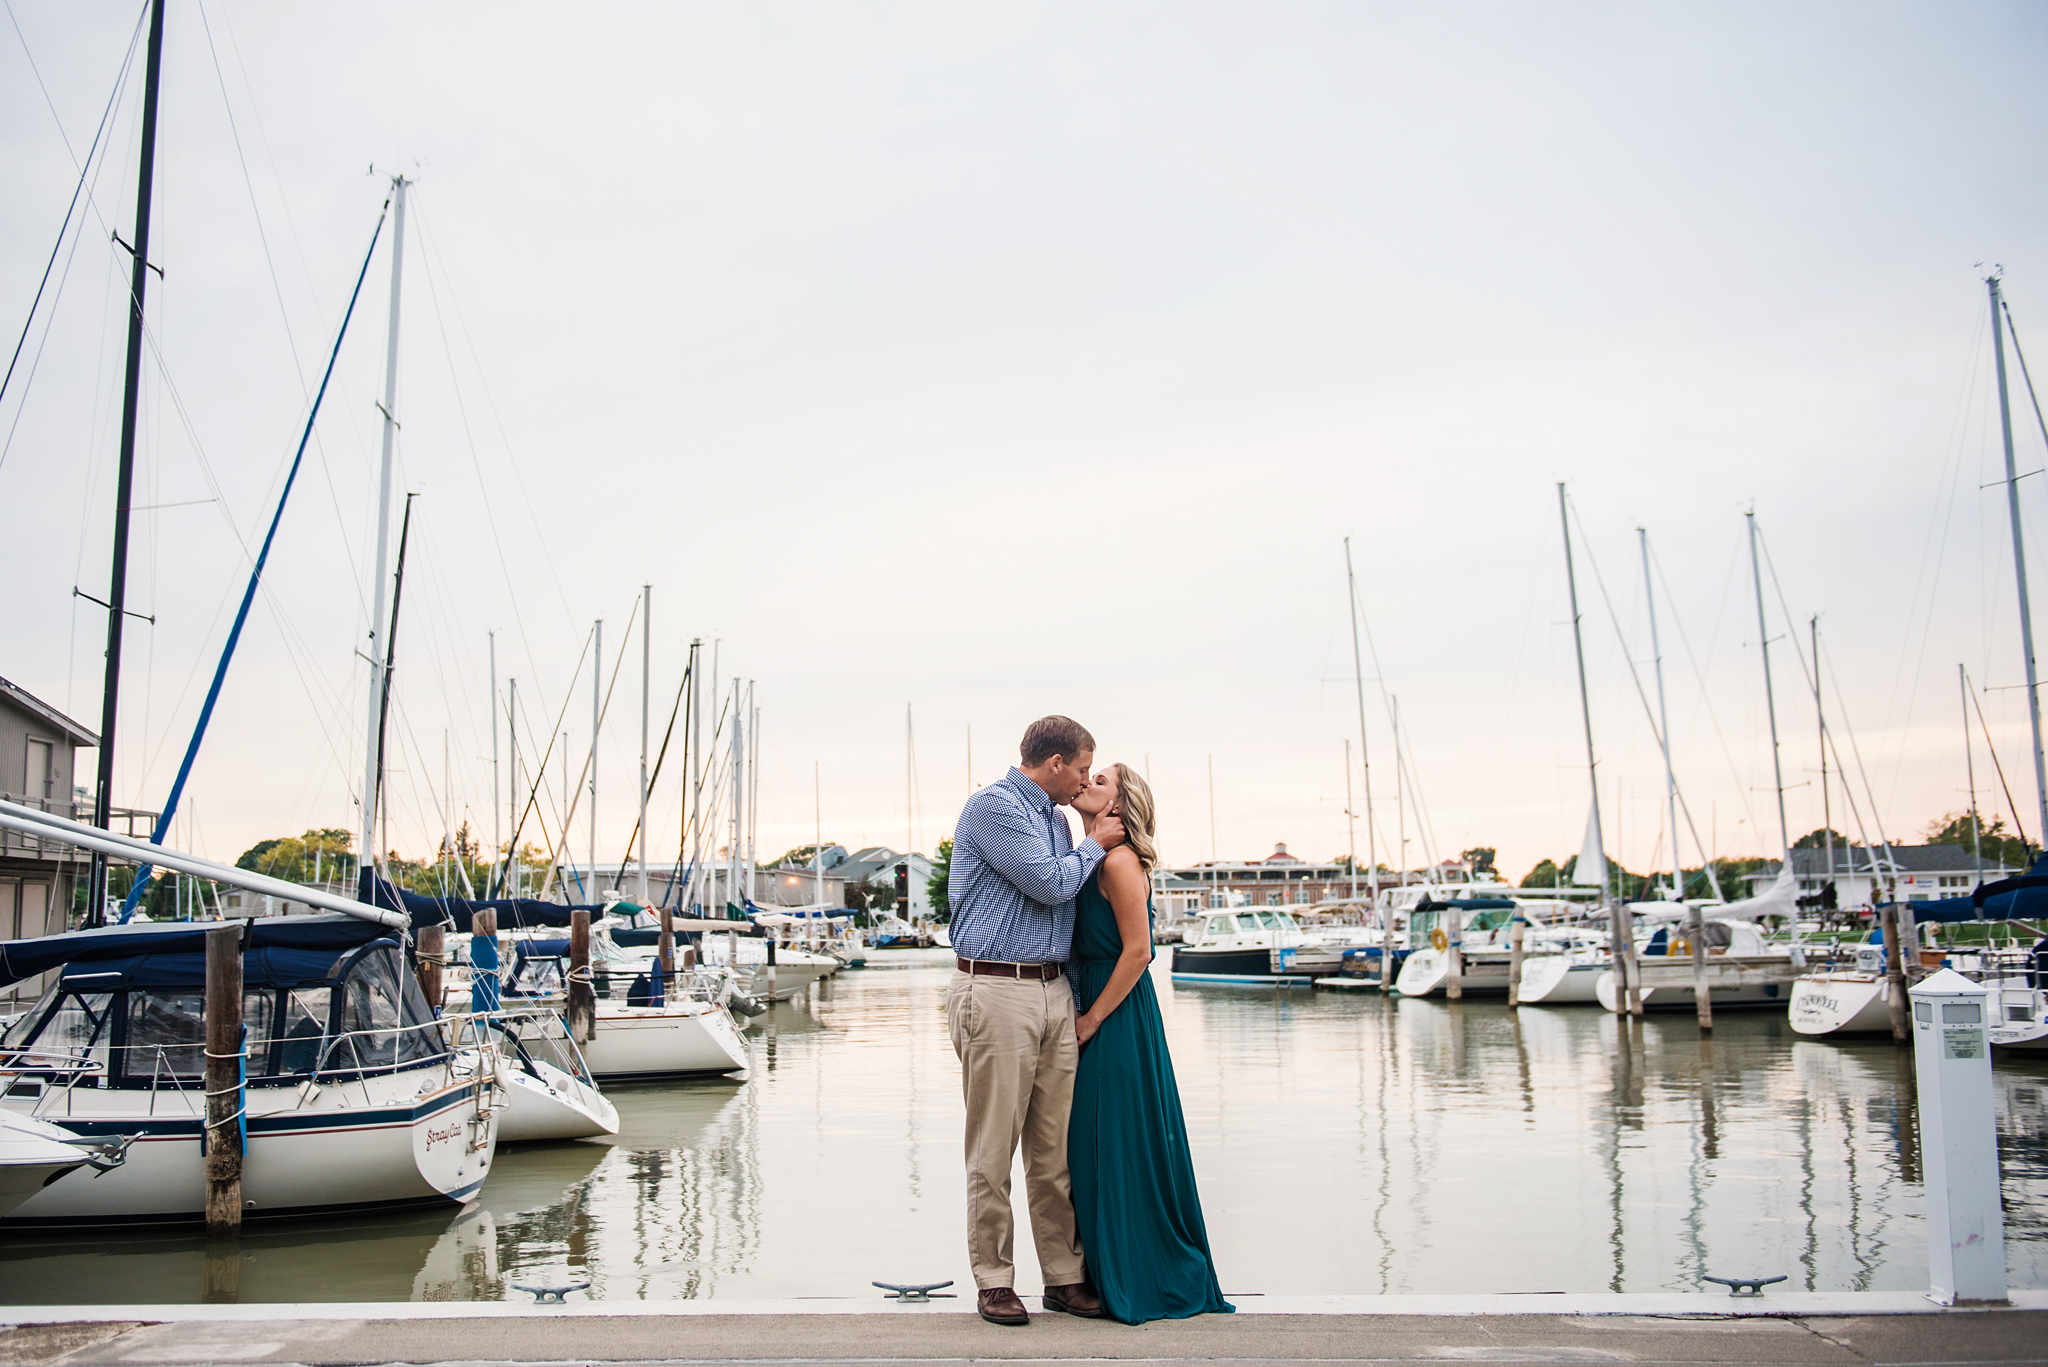 George_Eastman_House_Rochester_Yacht_Club_Rochester_Engagement_Session_JILL_STUDIO_Rochester_NY_Photographer_DSC_8224.jpg